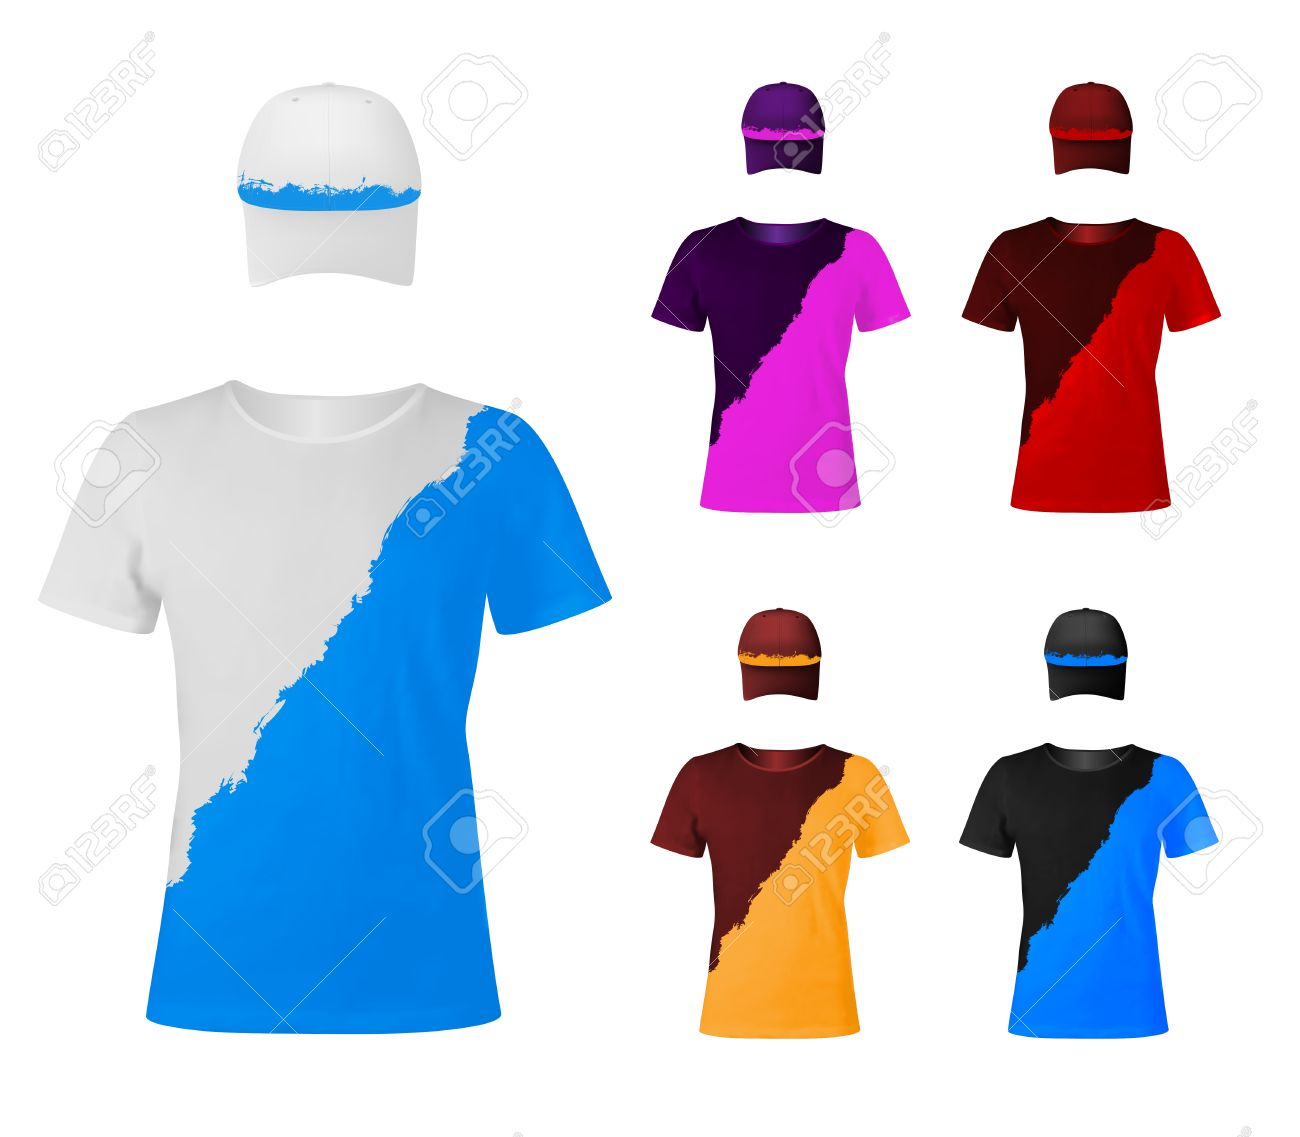 Design Template Of Two-color T-shirts With Hats. Royalty Free ...